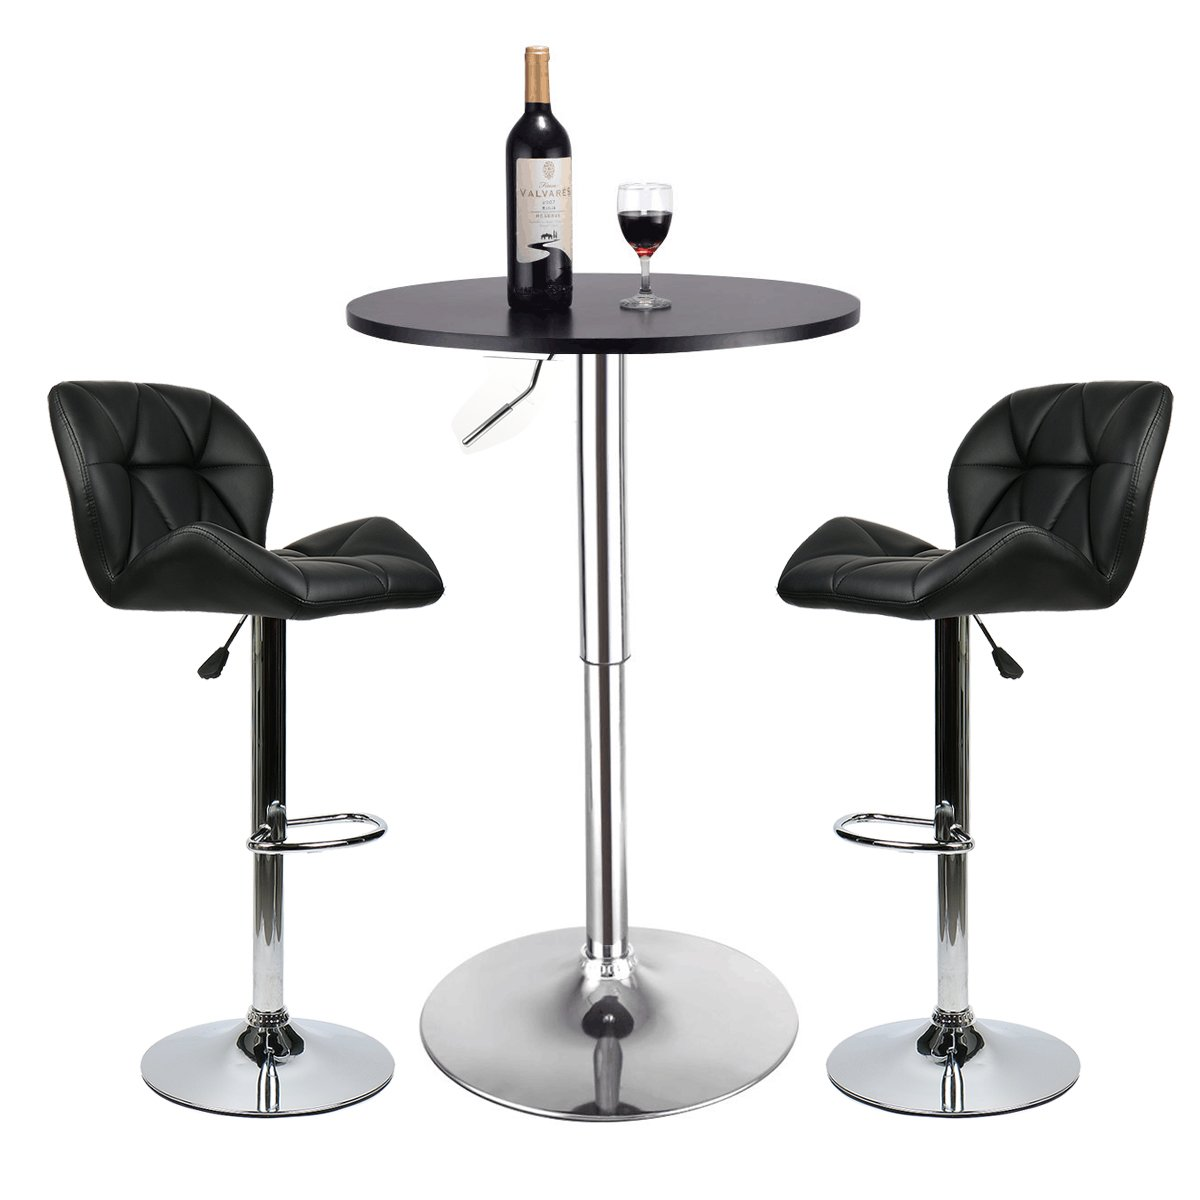 Bar Table Set of 3 – Adjustable Round Table and 2 Swivel Pub Stools for Home Kitchen Bistro, Bars Wine Cabinets (Set 4)